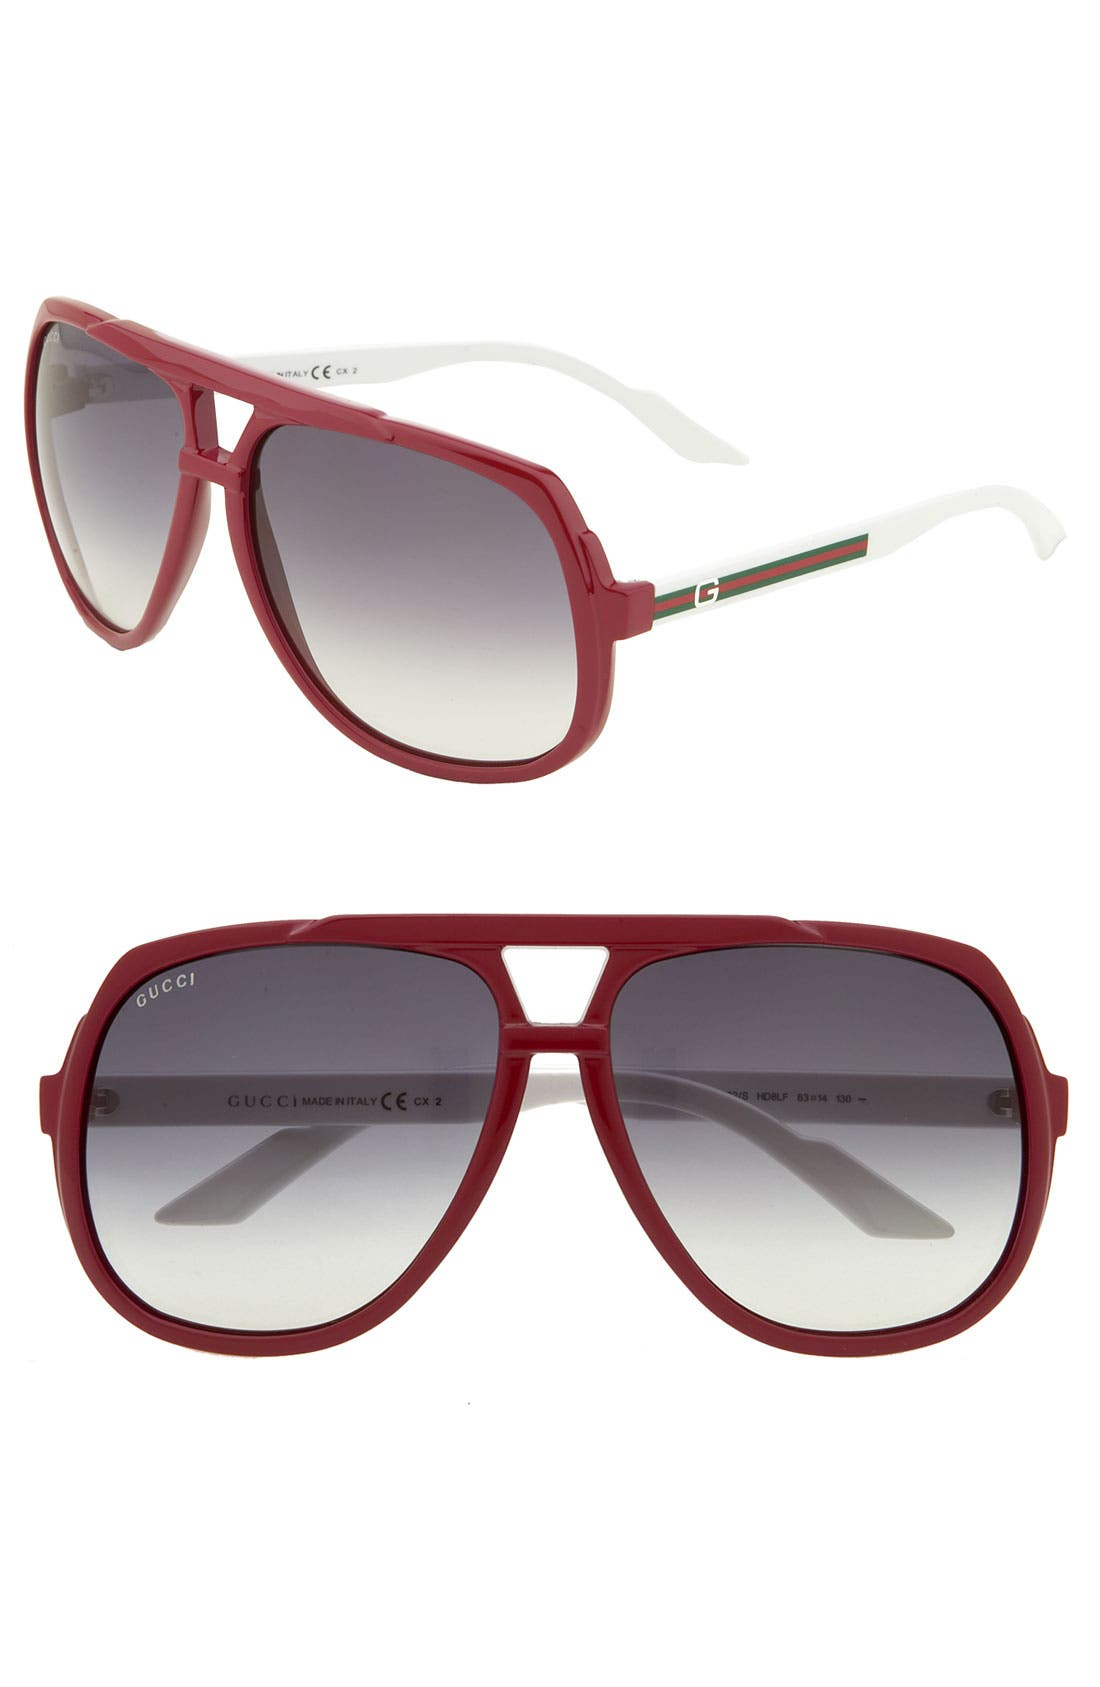 Alternate Image 1 Selected - Gucci Vintage Inspired Stripe 63mm Aviator Sunglasses